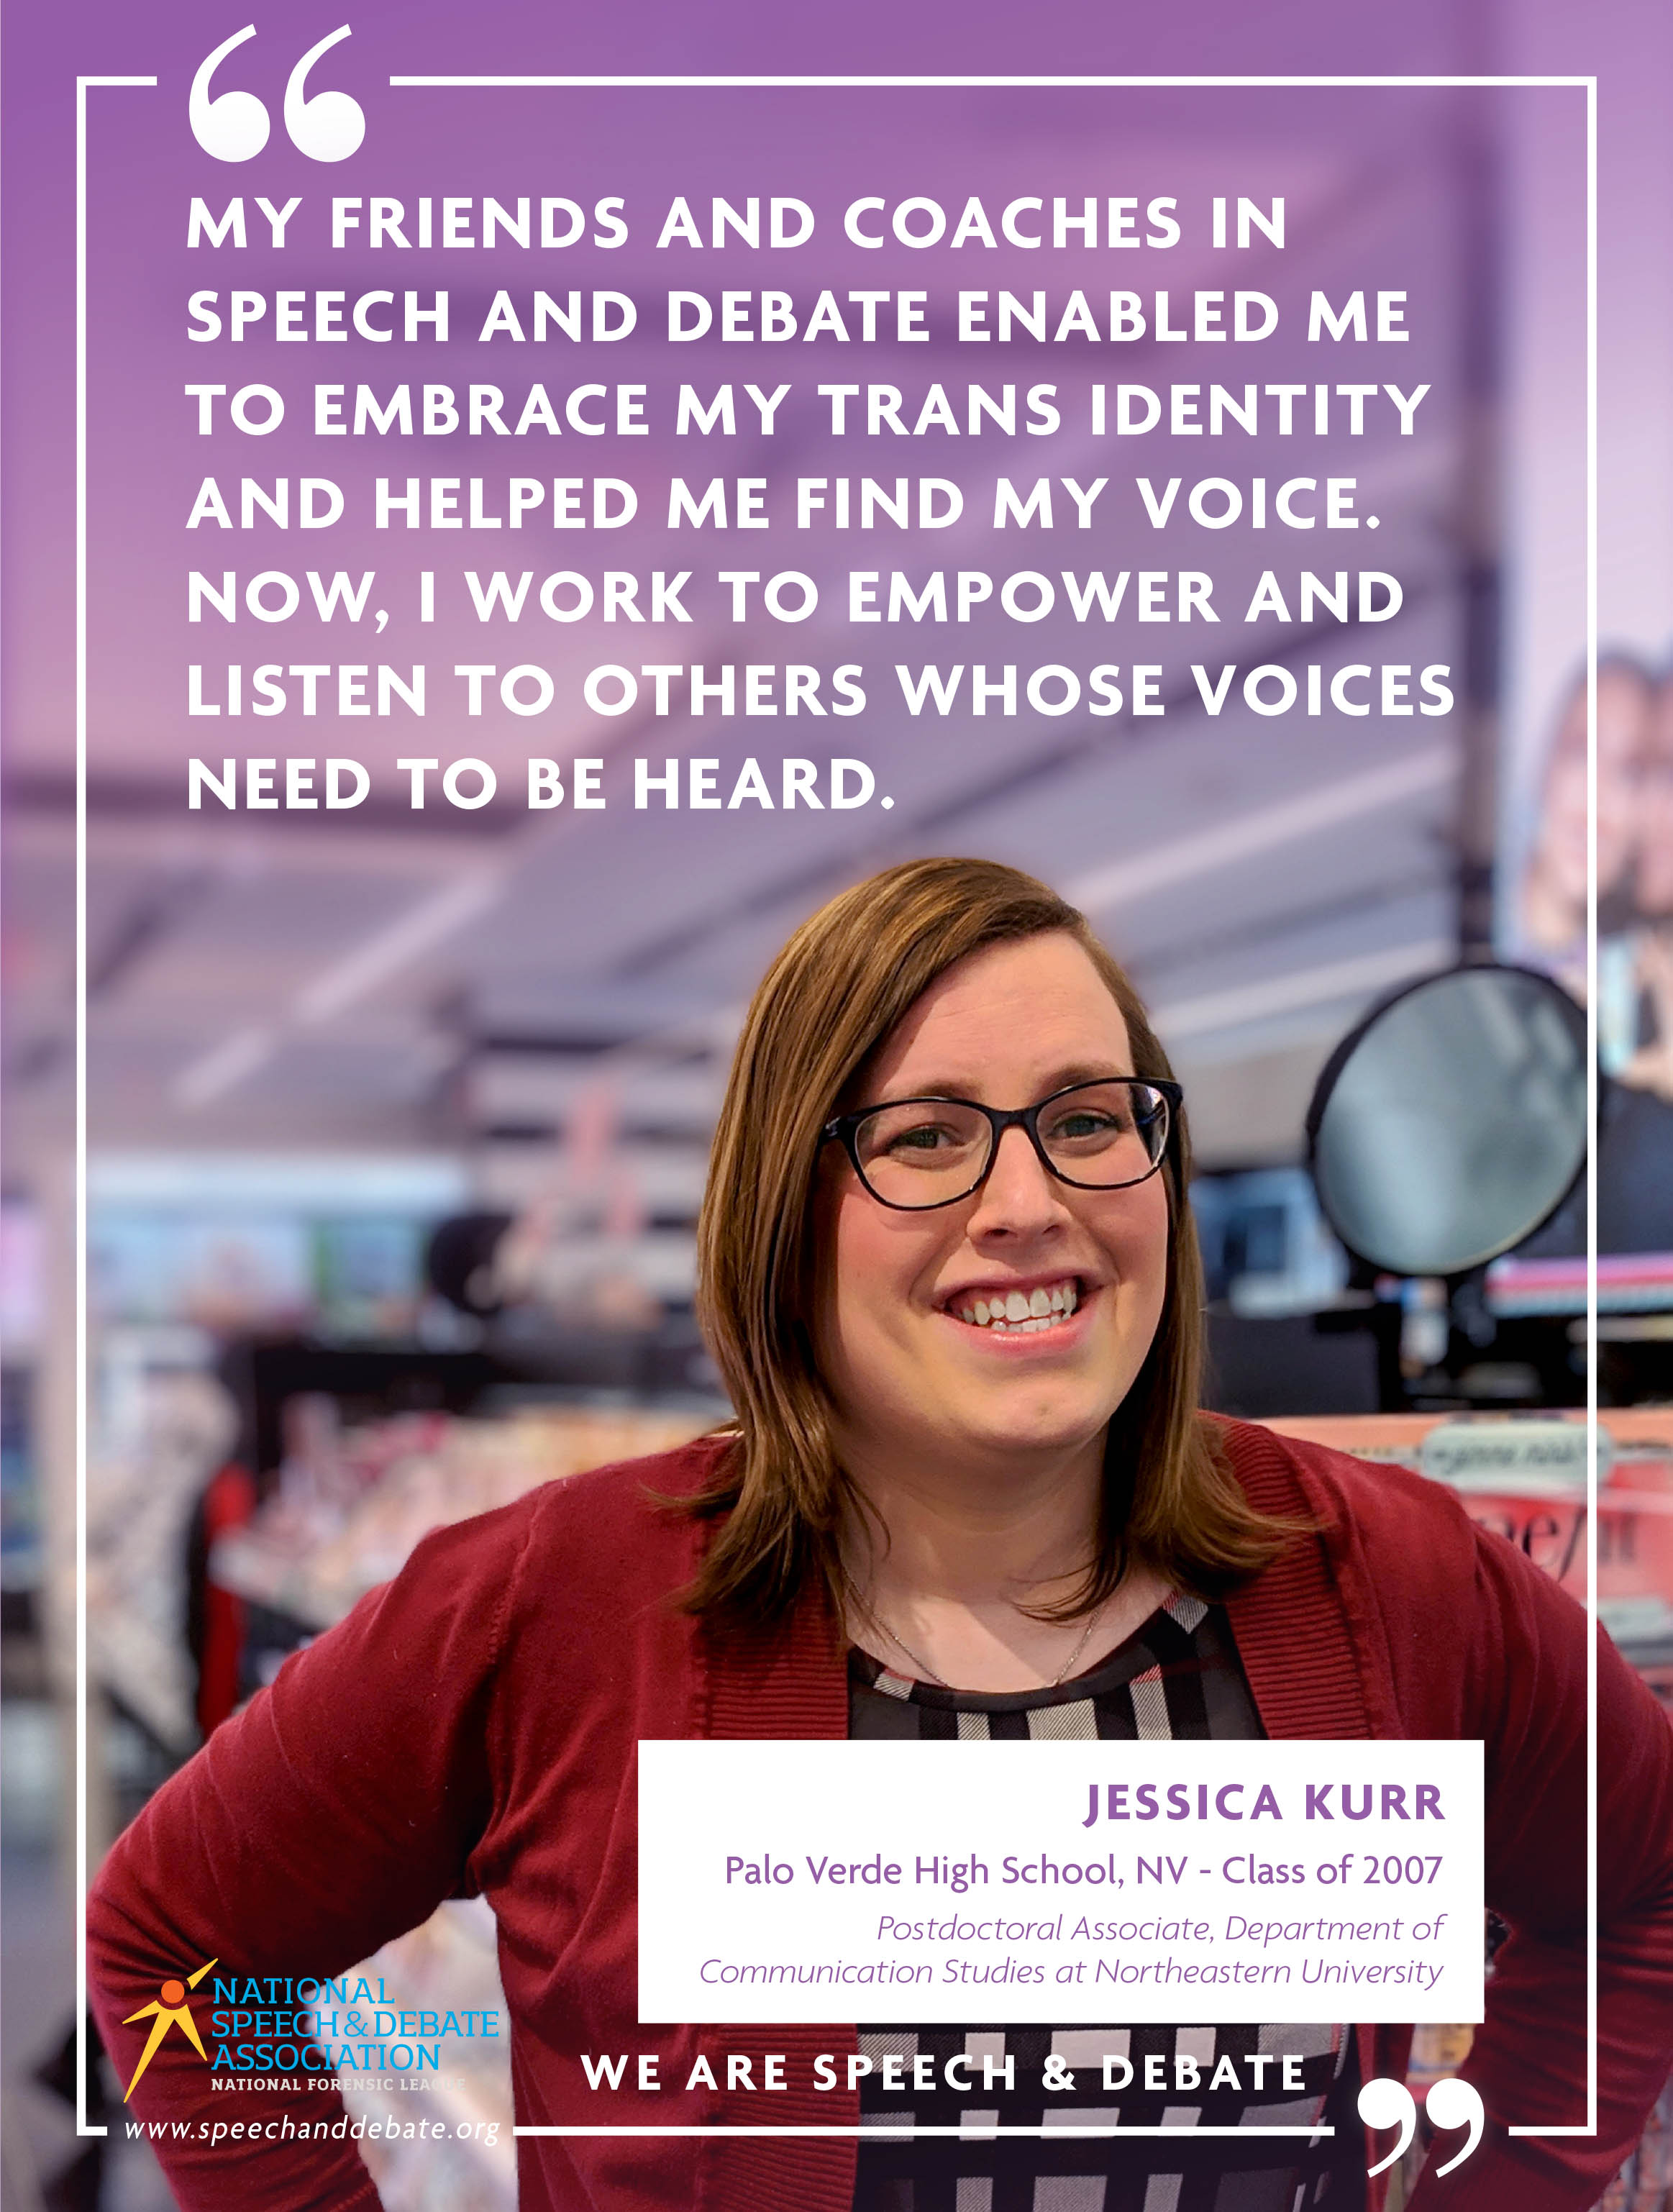 """MY FRIENDS AND COACHES IN SPEECH AND DEBATE ENABLED ME TO EMBRACE MY TRANS IDENTITY AND HELPED ME FIND MY VOICE. NOW, I WORK TO EMPOWER AND LISTEN TO OTHERS WHOSE VOICES NEED TO BE HEARD."" - Jessica Kurr"